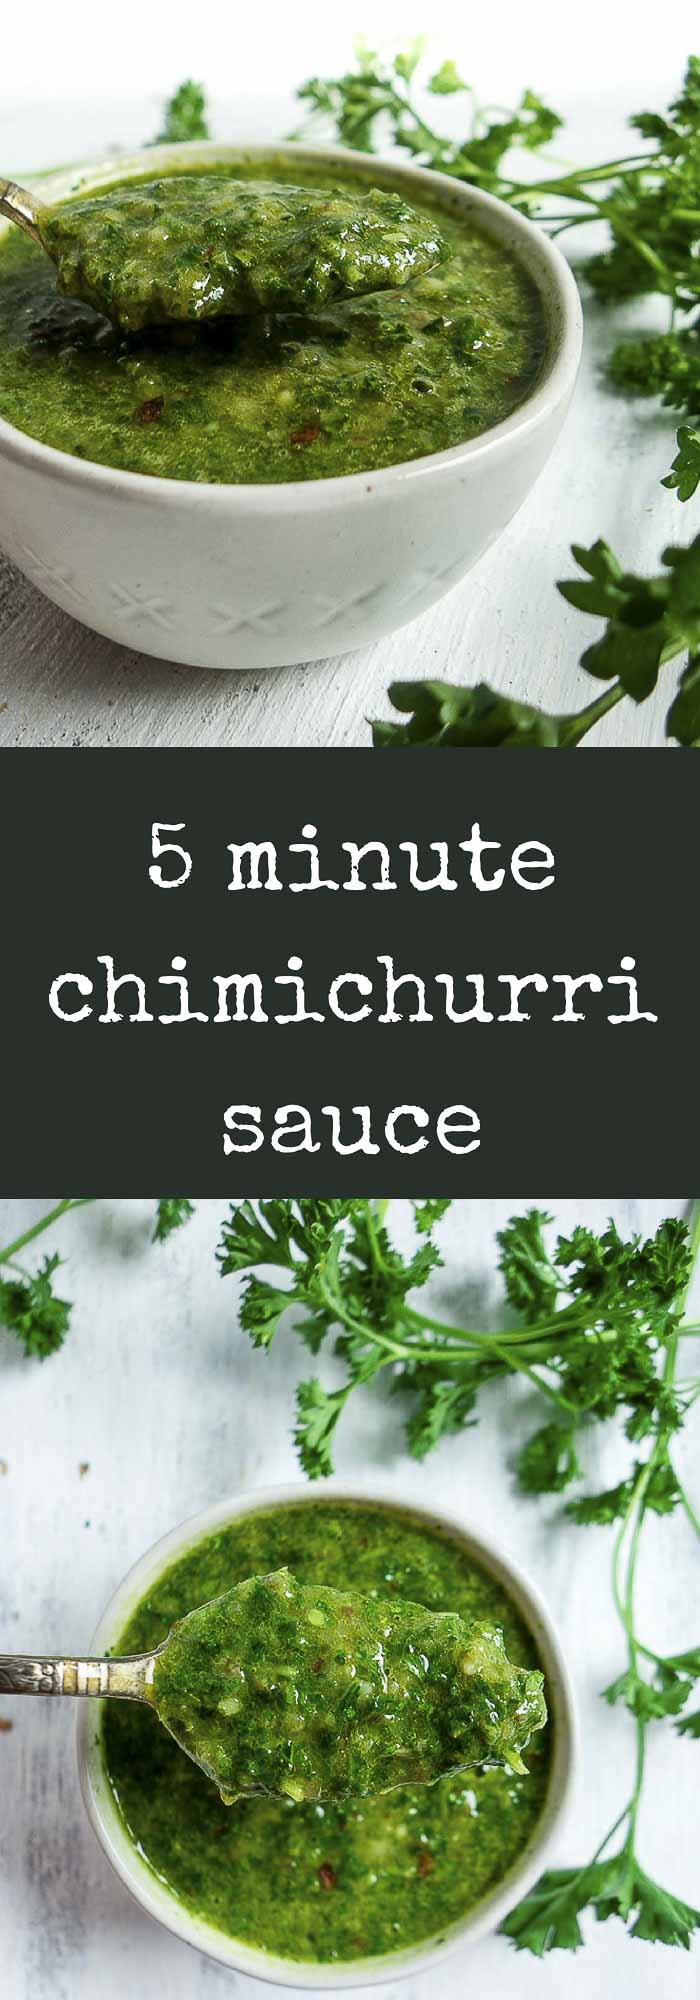 Packed full of fresh herbs, extra virgin olive oil, vinegar and fresh lemon juice, this Argentinian Chimichurri sauce is amazingly fresh and flavorful! #wenthere8this #chimichurrisauce #chimichurri